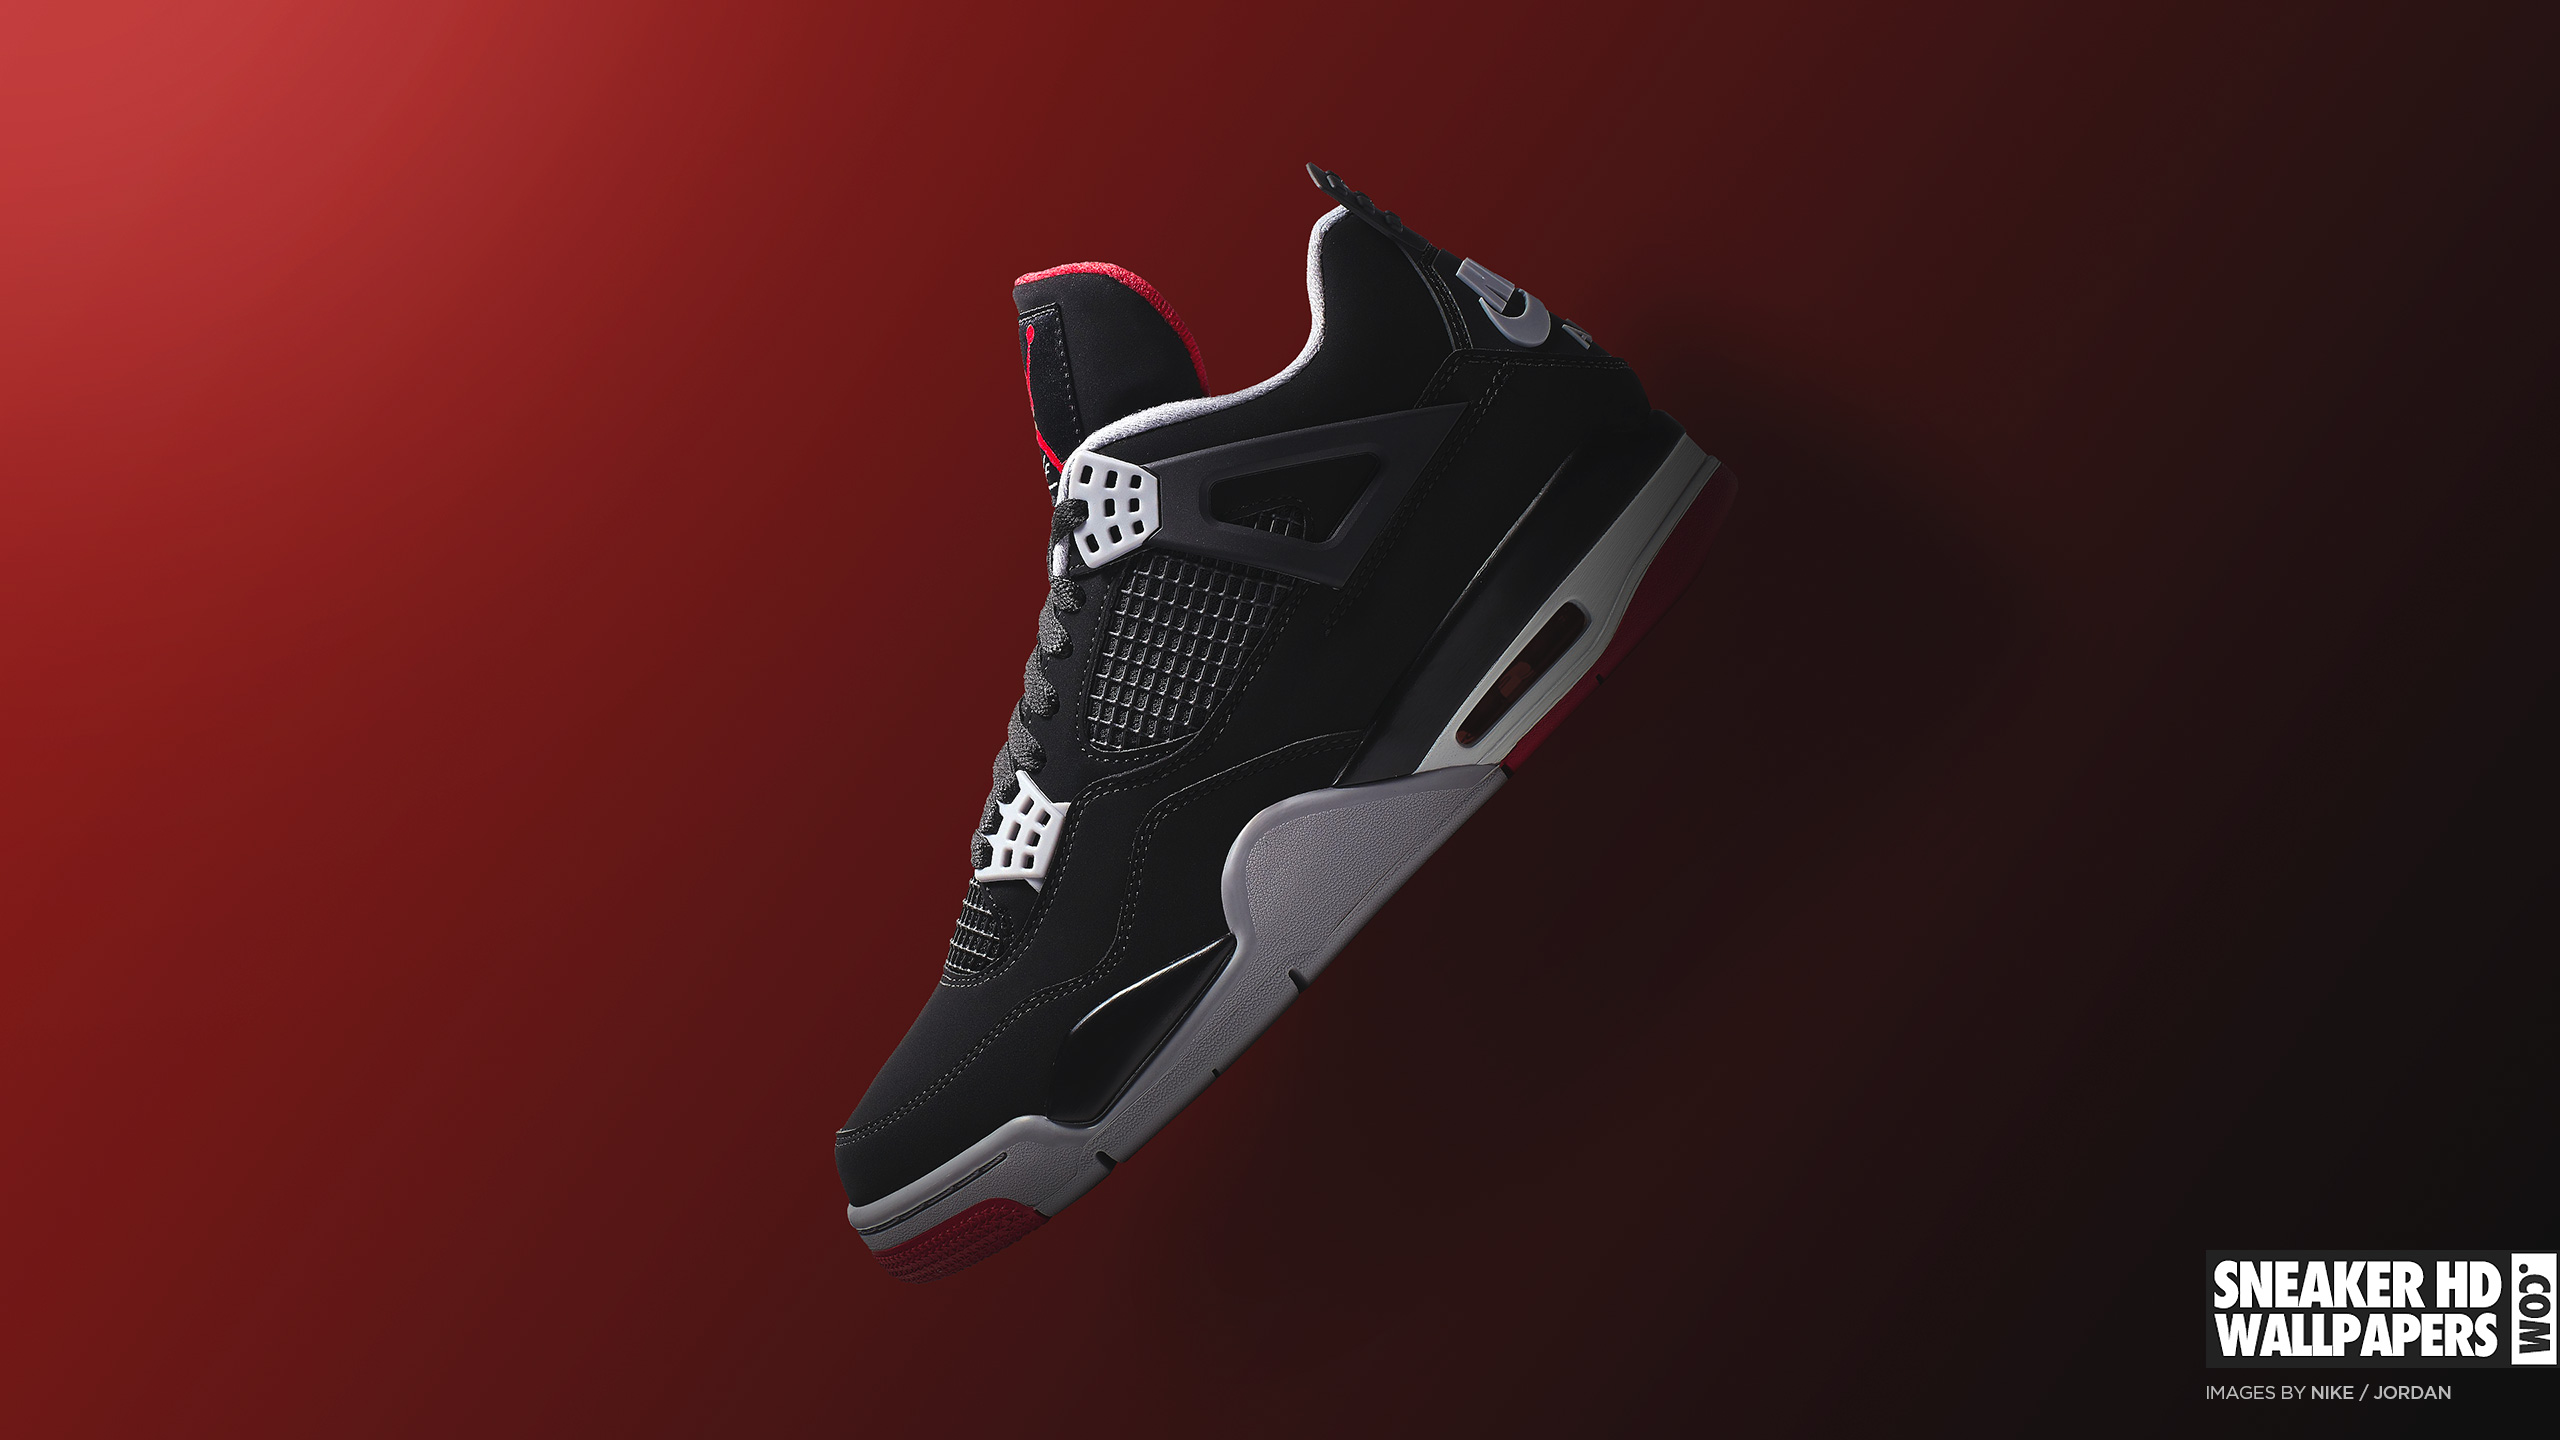 Sneakerhdwallpapers Com Your Favorite Sneakers In Hd And